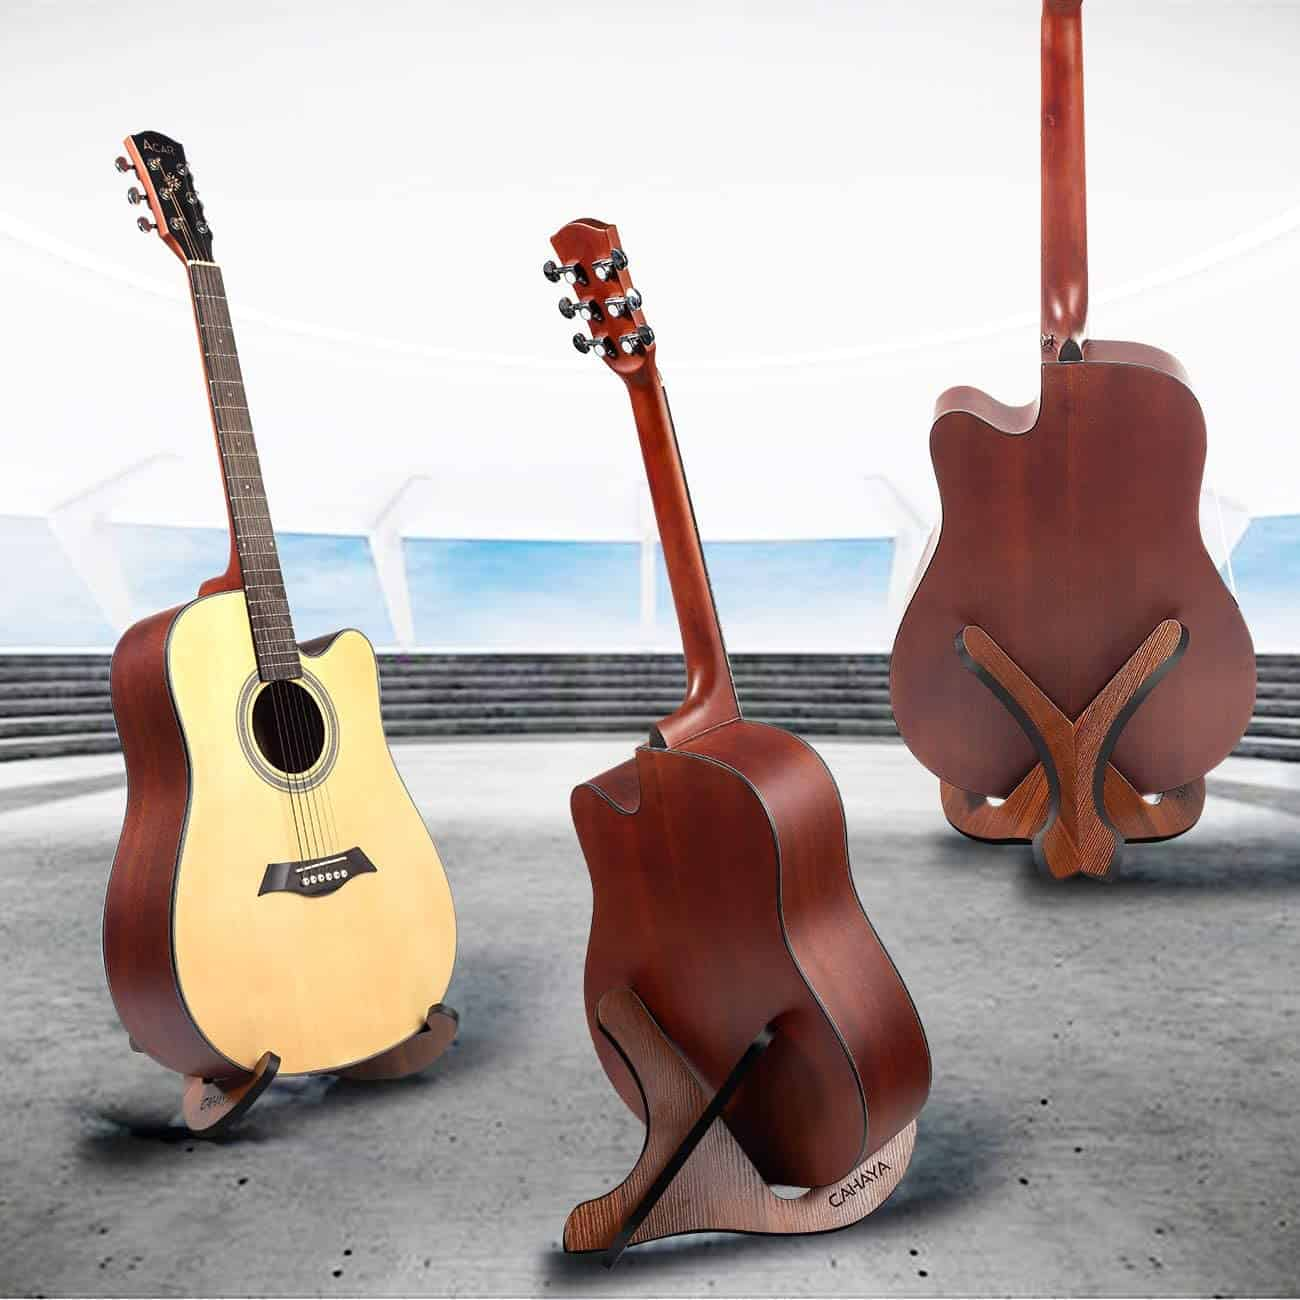 Top pick & best plywood guitar stand: CAHAYA Universal Wooden